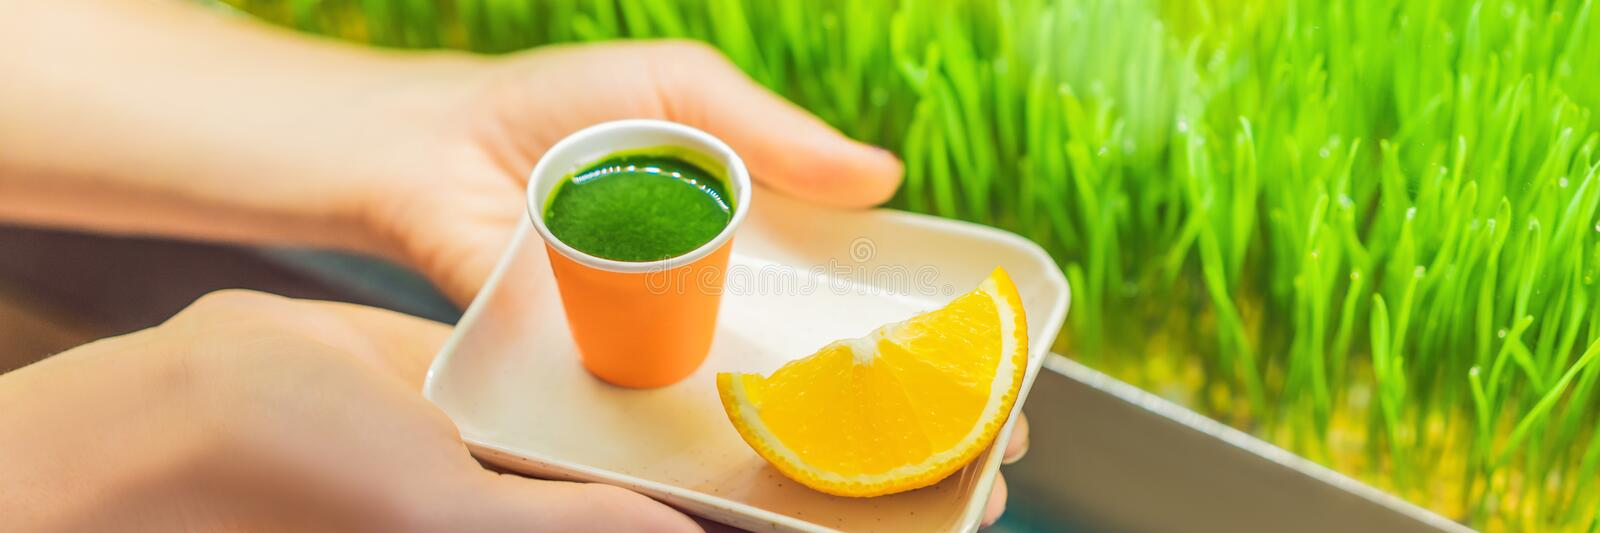 Wheatgrass shot. Juice from wheat grass. Trend of health. wheat grass BANNER, LONG FORMAT royalty free stock photos